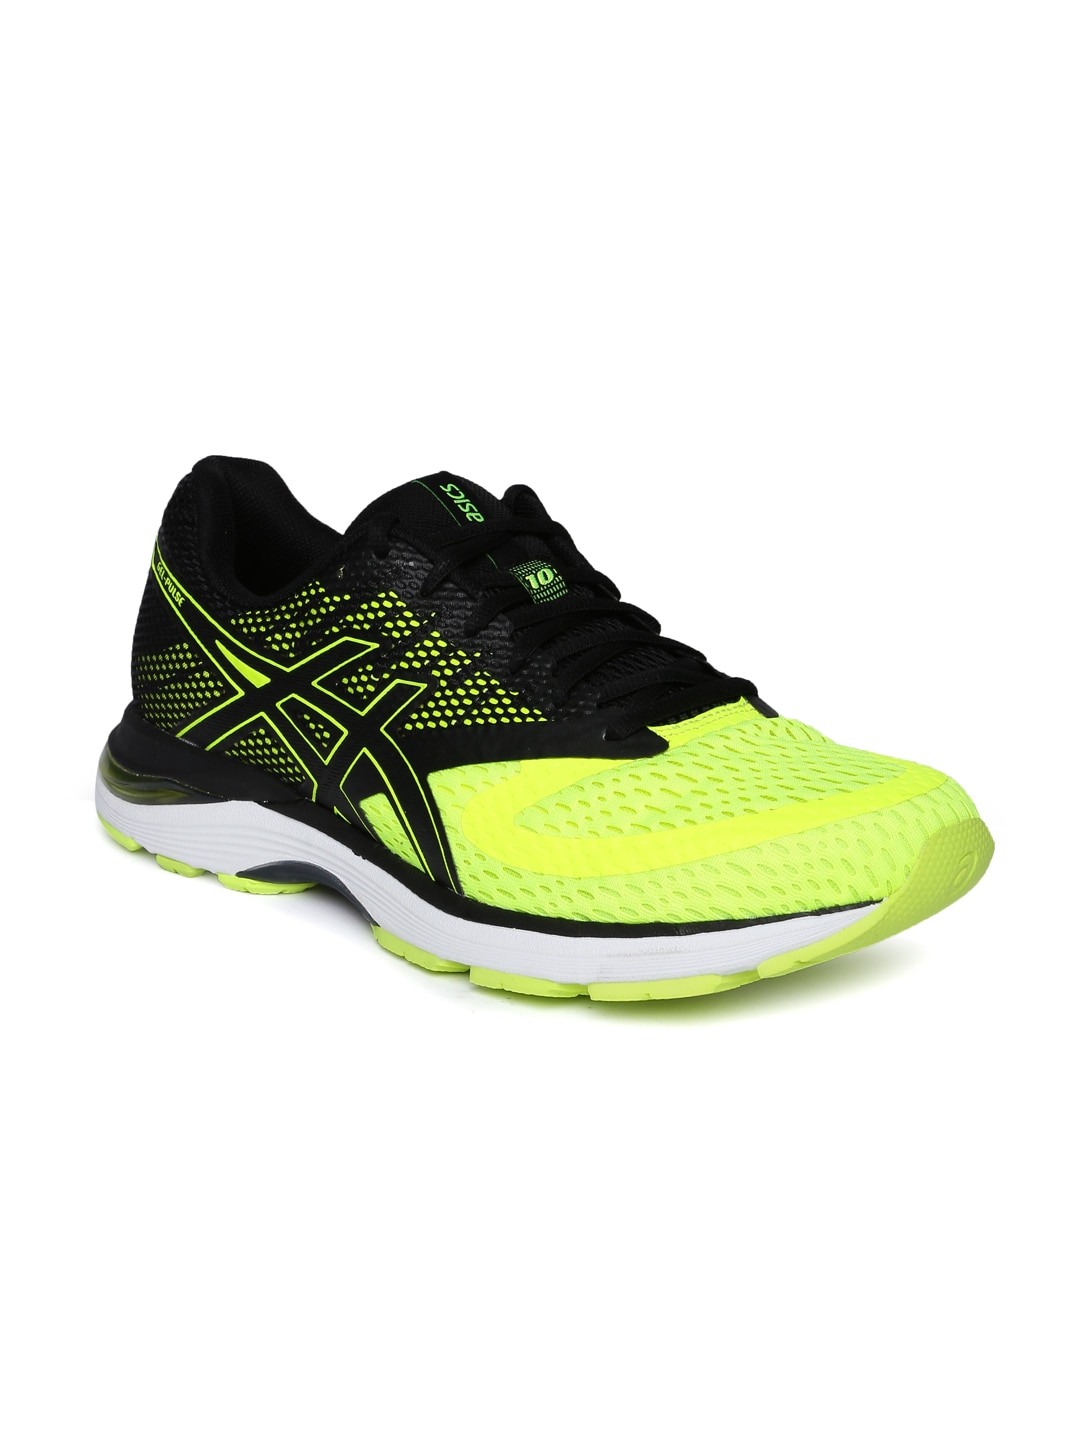 official photos 61d99 3acd9 Asics Shoes - Buy Asics Shoes for Men and Women Online - Myntra